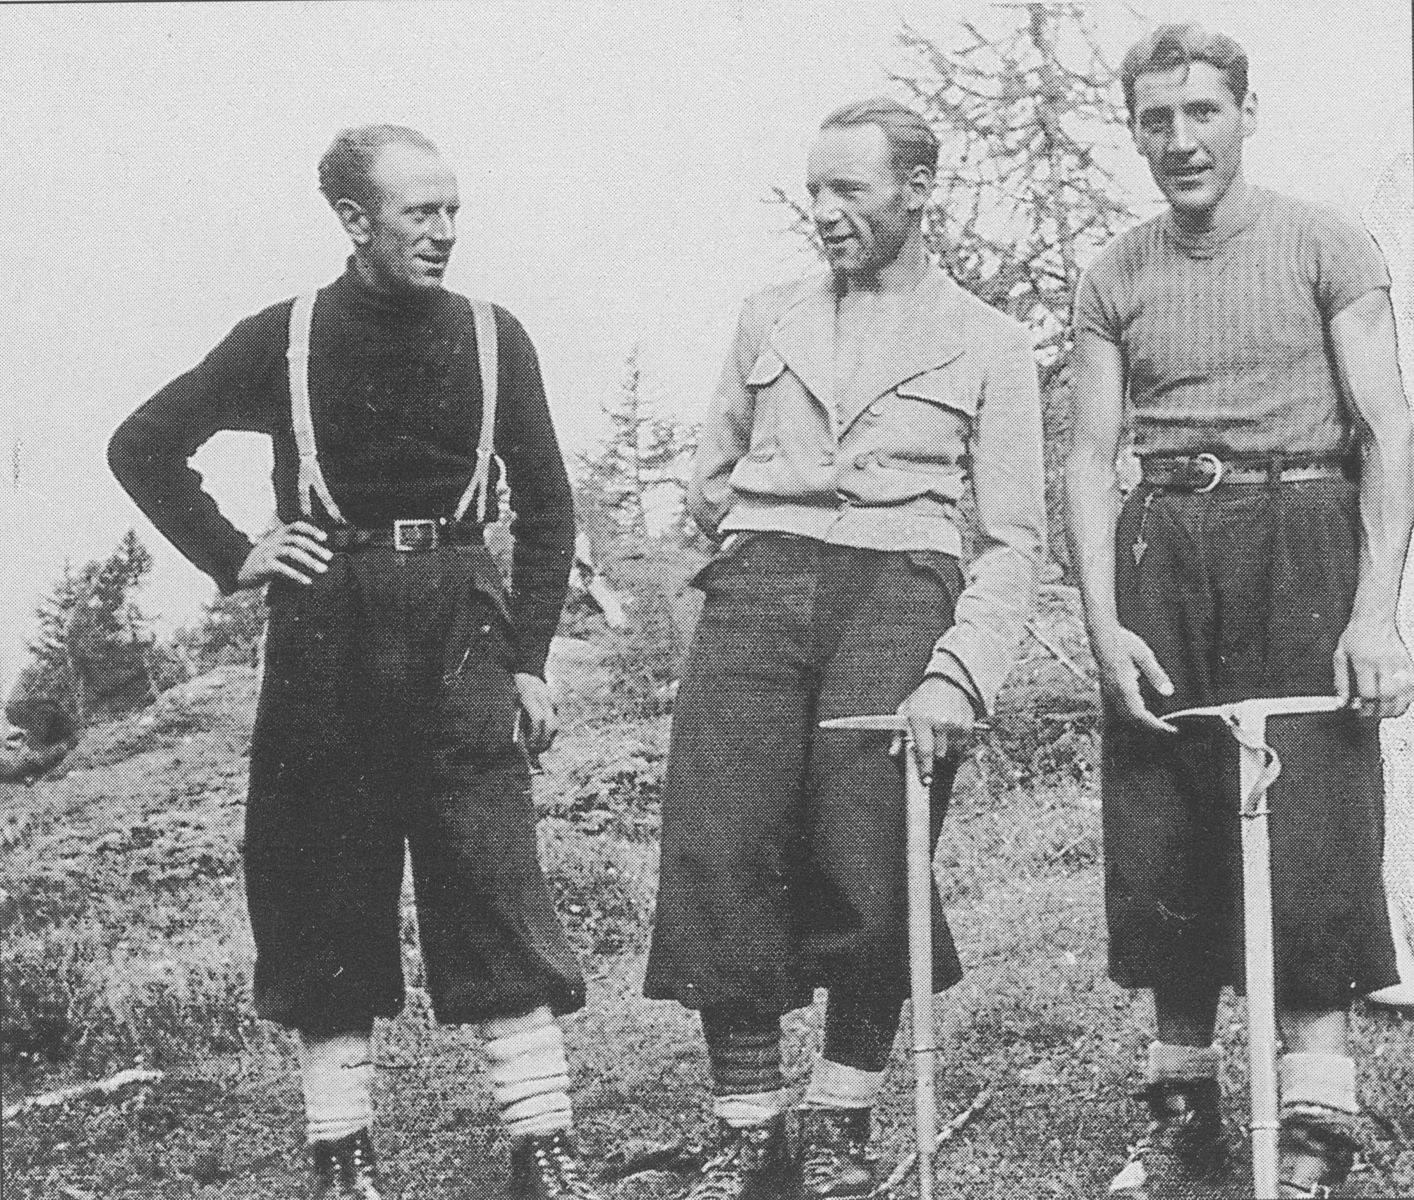 Cassin, center, after climbing Grands Jorasses. Ugo Tizzoni is left, Gino Esposito, right.